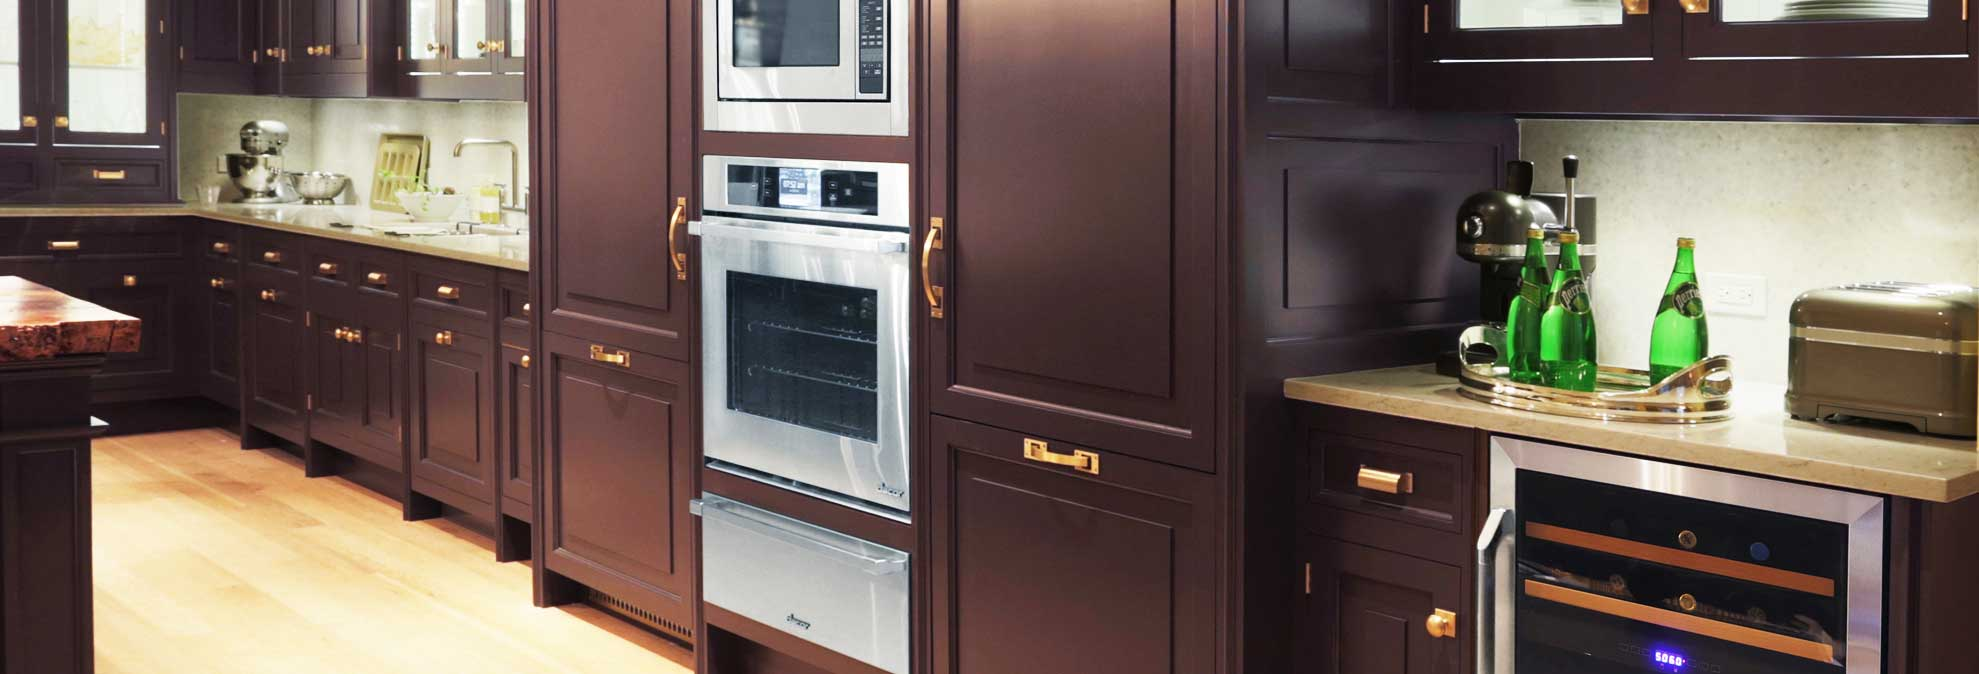 consumer reports kitchen cabinets best kitchen cabinet buying guide consumer reports 13798